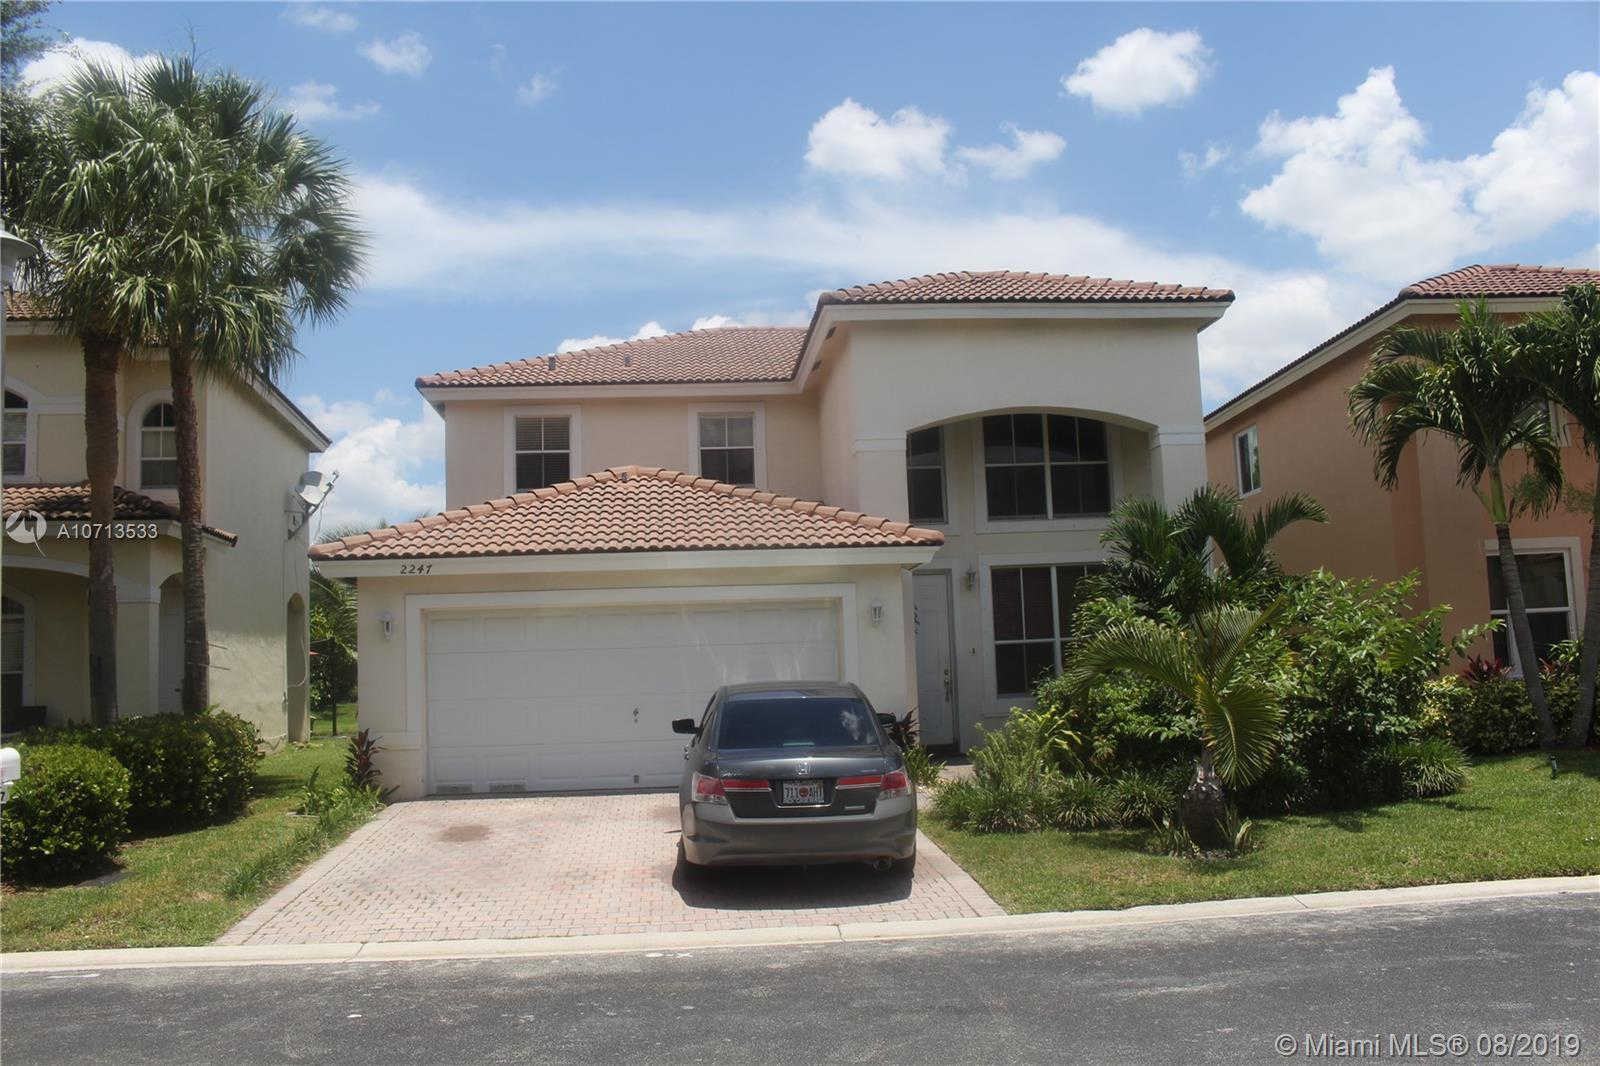 2247 NW 77th Ter, Pembroke Pines, FL 33024 now has a new price of $2,500!